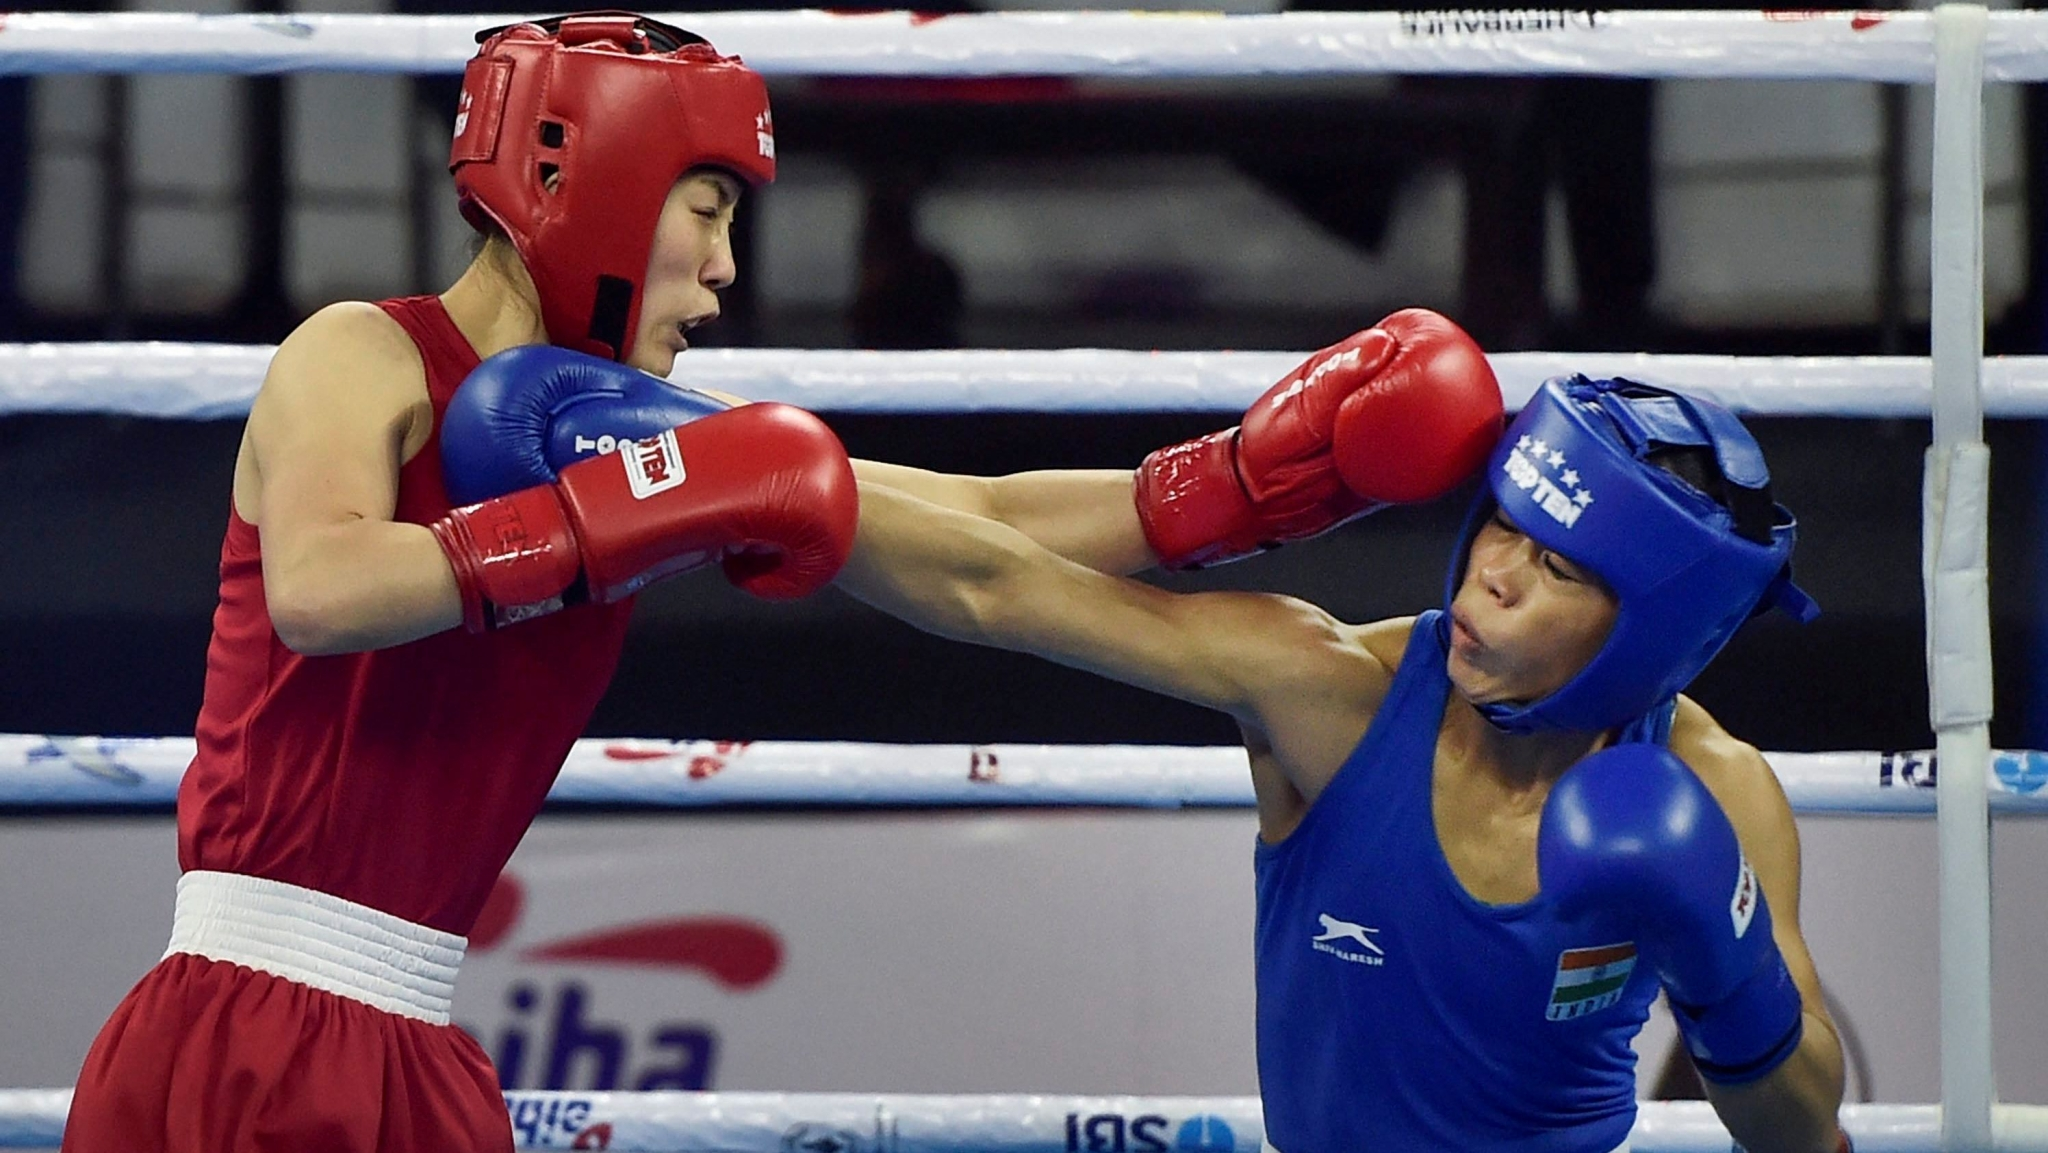 In the final Mary Kom will face Ukraine's Hanna Okhota whom the Indian had beaten in a tournament in Poland this year